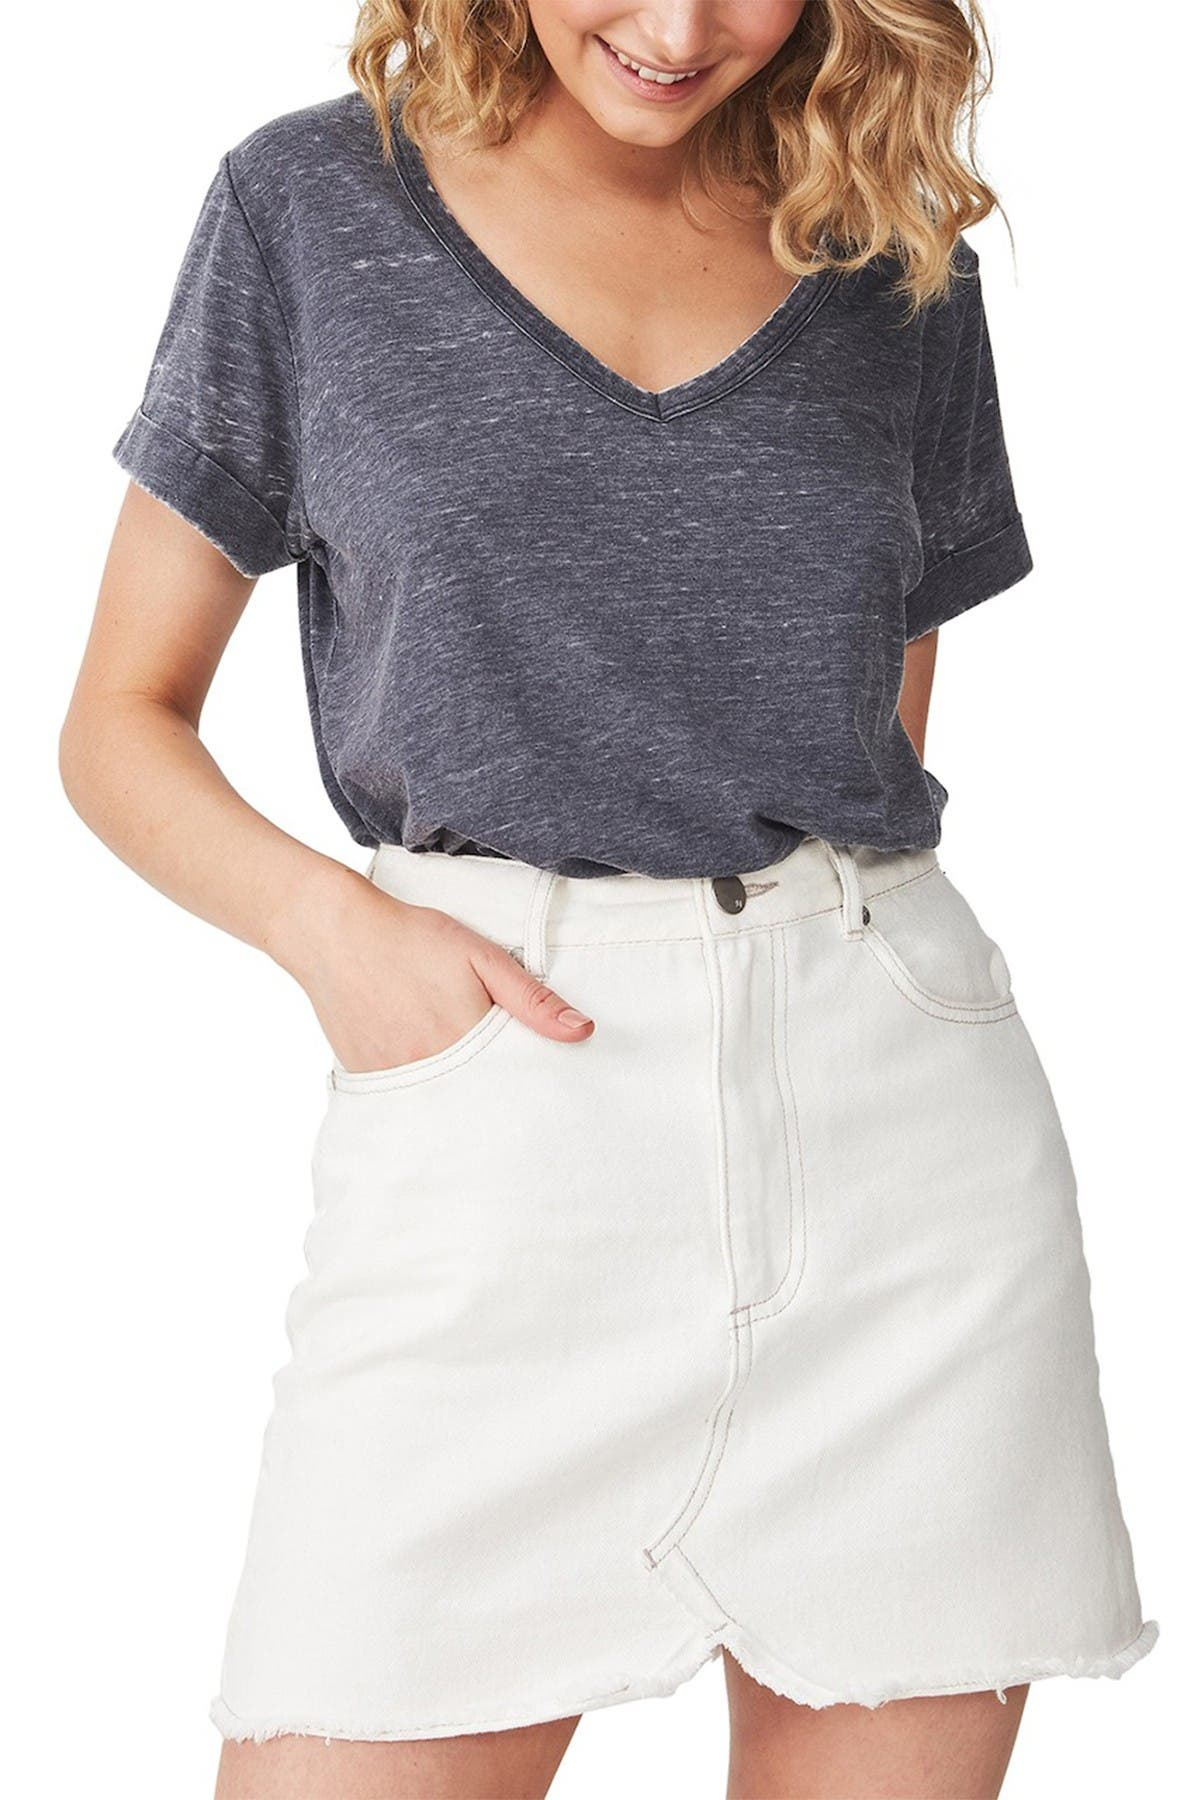 Image of Cotton On Karly Short Sleeve V-Neck Top